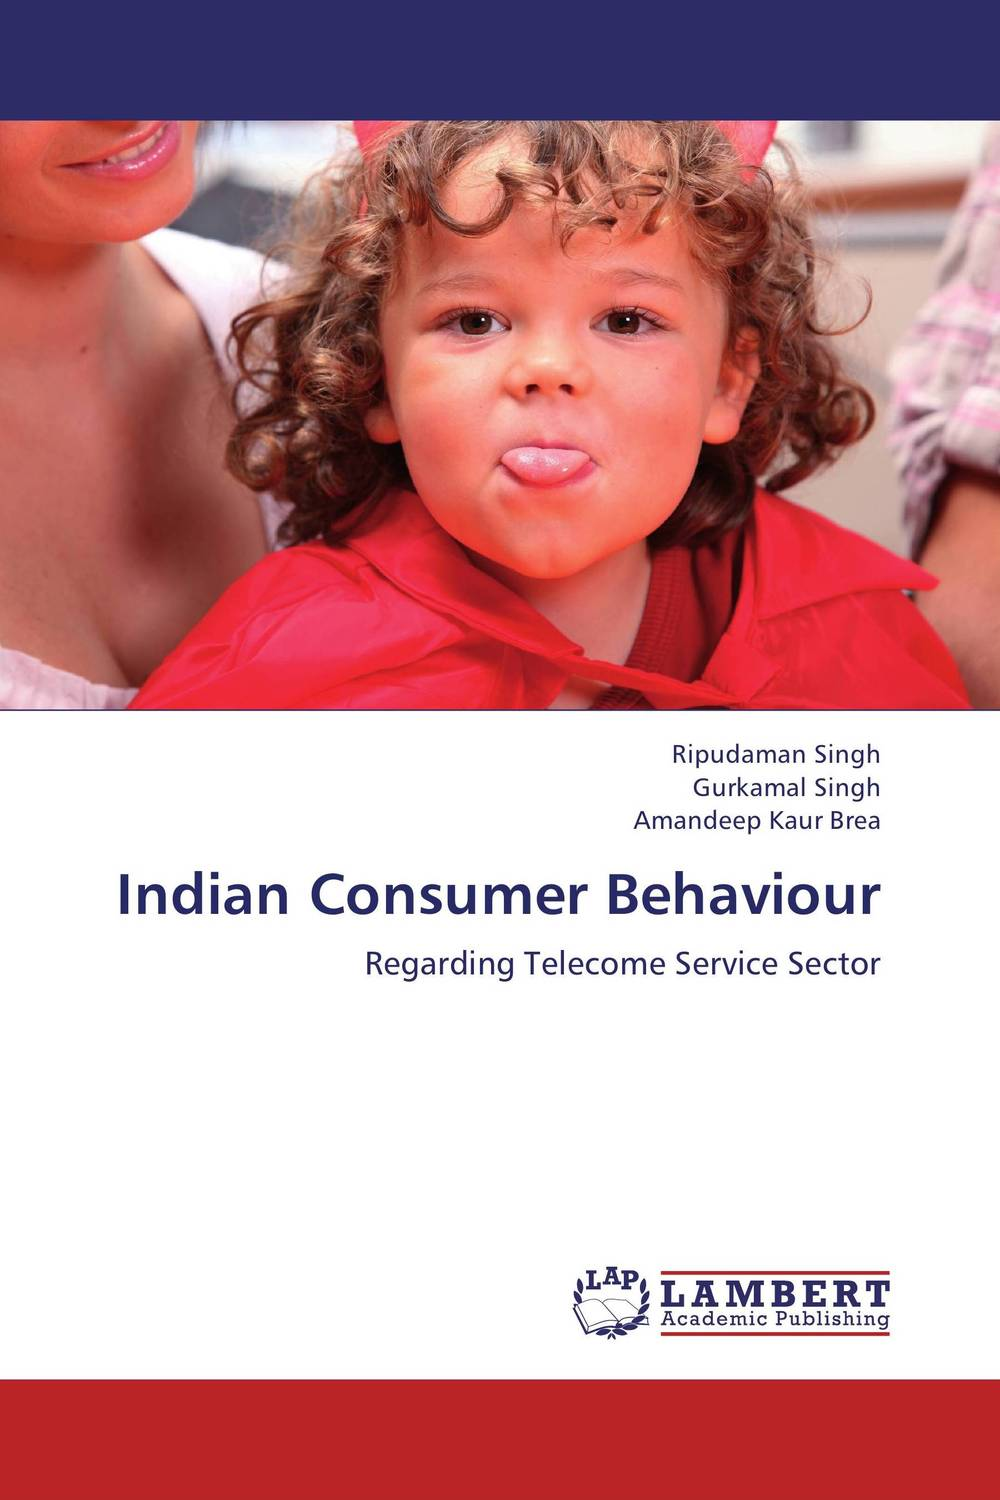 Indian Consumer Behaviour ripudaman singh gurkamal singh and amandeep kaur brea indian consumer behaviour